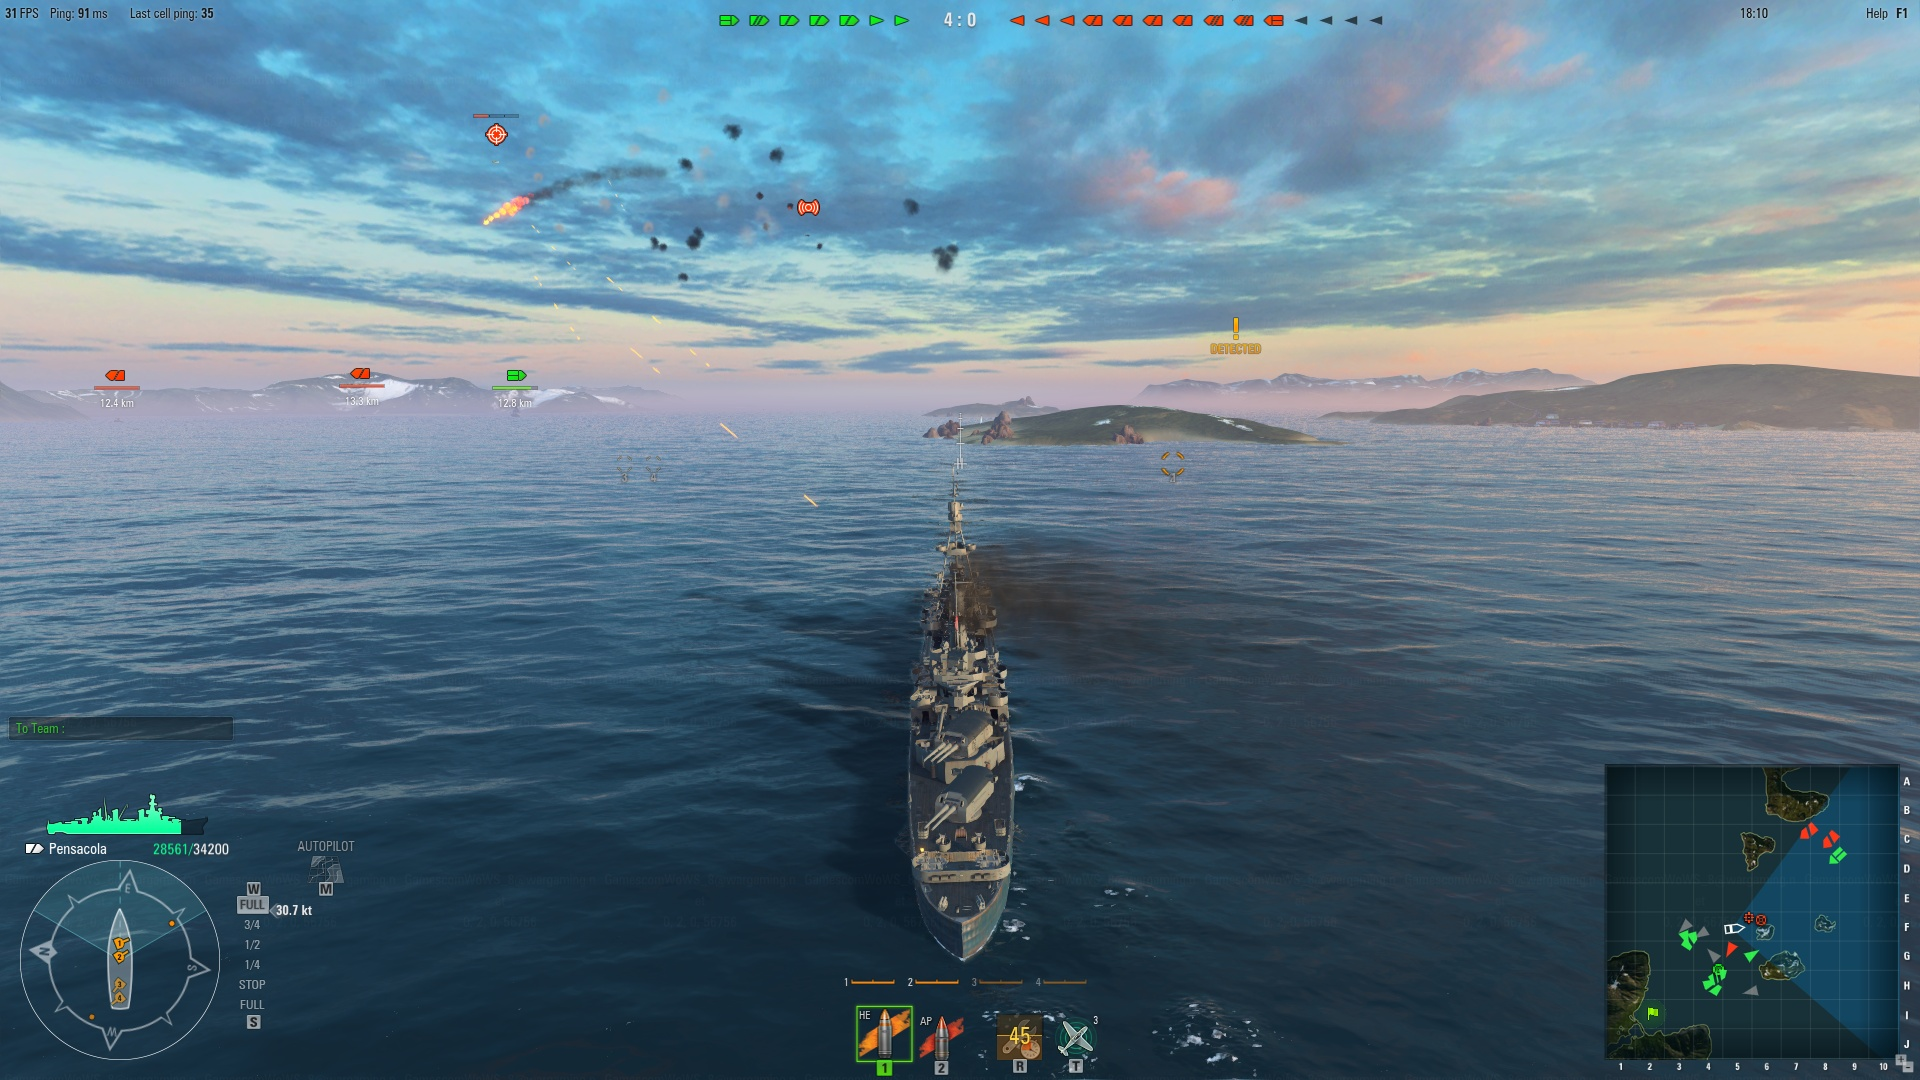 wows_screens_vessels_ui_gk_2014_image_2